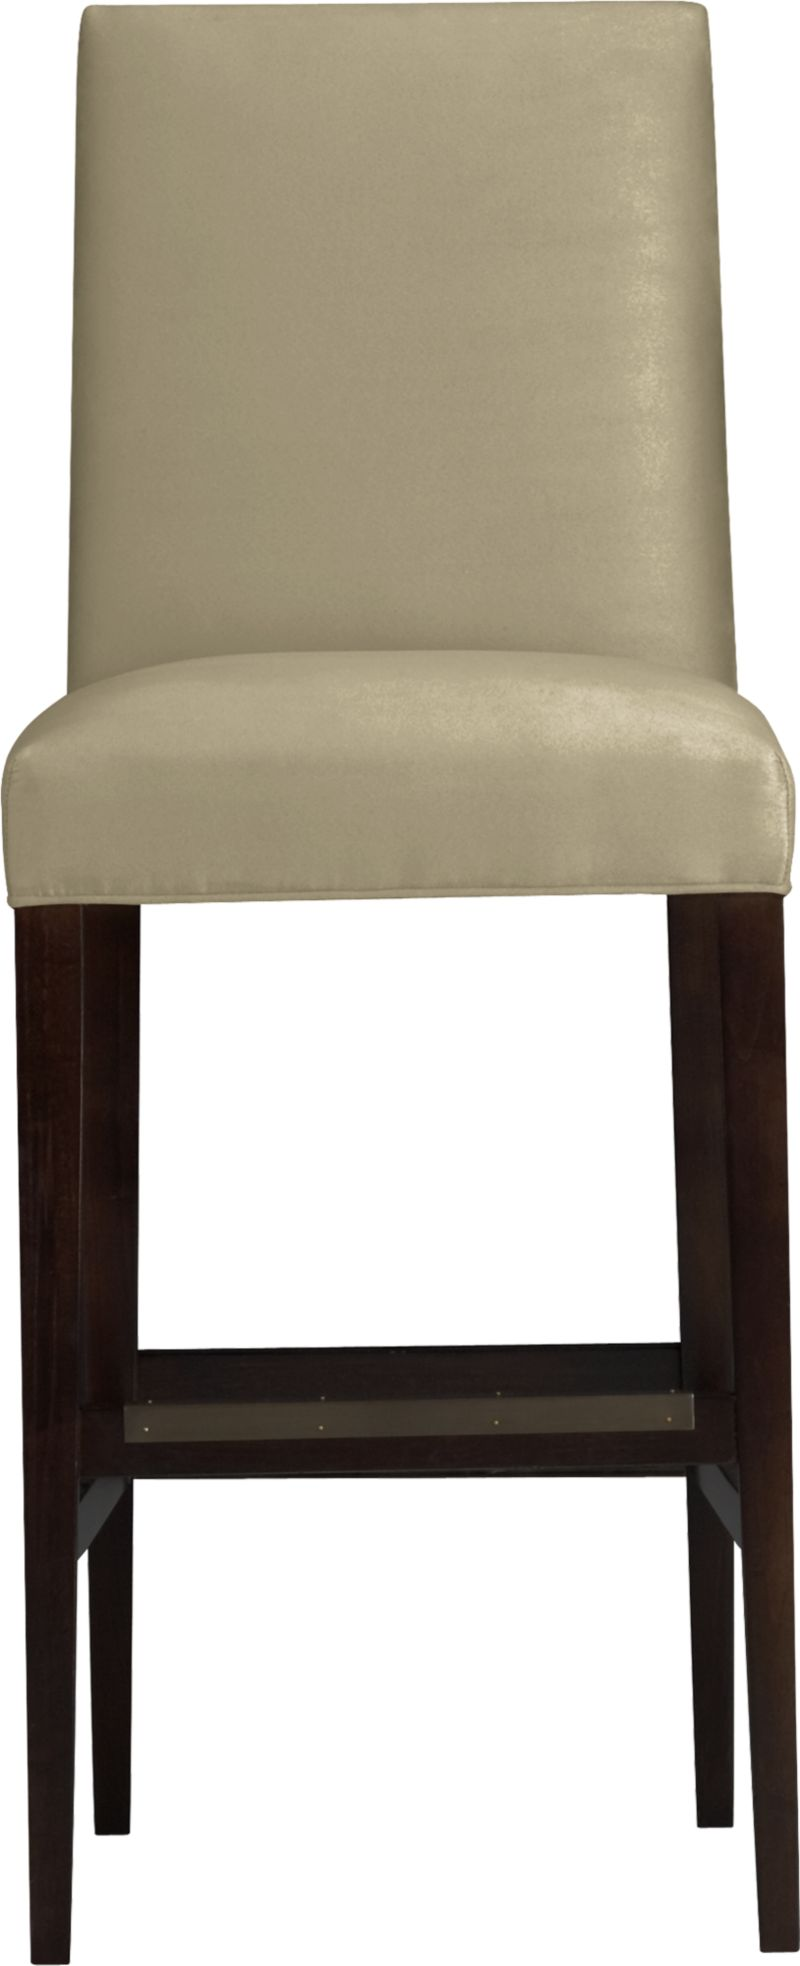 Our Miles barstool is a fresh new classic with polished proportions and casual formality. Padded seat and gently curved back are upholstered in an easy-care textural poly blend in neutral sand. Slim hickory-colored hardwood legs taper gracefully to the floor.<br /><br />After you place your order, we will send a fabric swatch via next day air for your final approval. We will contact you to verify both your receipt and approval of the fabric swatch before finalizing your order.<br /><br /><NEWTAG/><ul><li>Eco-friendly construction</li><li>Certified sustainable solid engineered hardwood frame</li><li>Soy- or plant-based polyfiber cushions</li><li>Solid maple legs with a hickory finish</li><li>Poly-cotton blend fabric&l